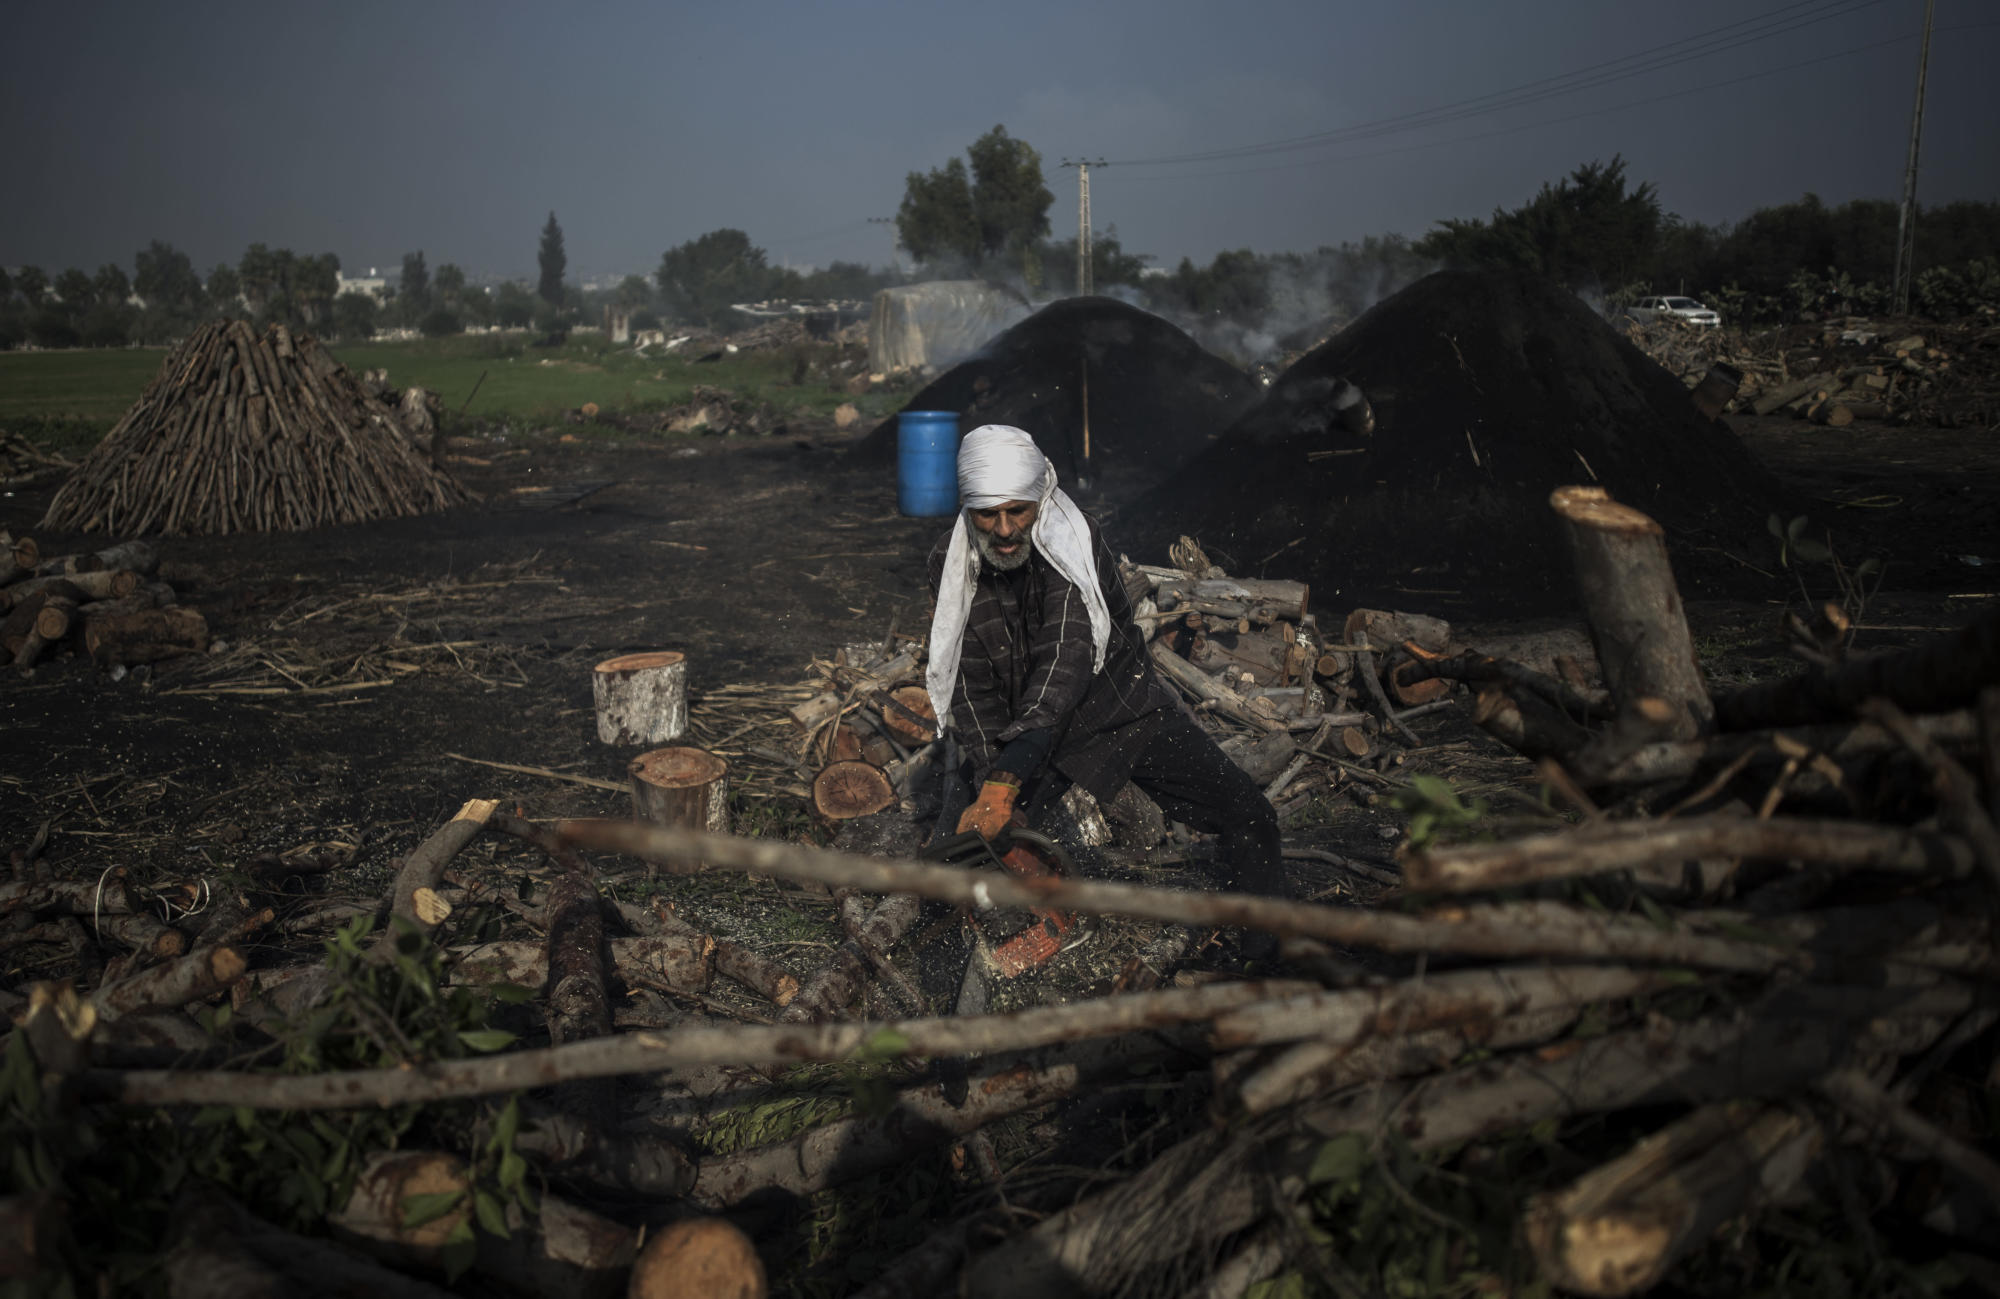 Sparse trees, little work for woodcutters in squeezed Gaza